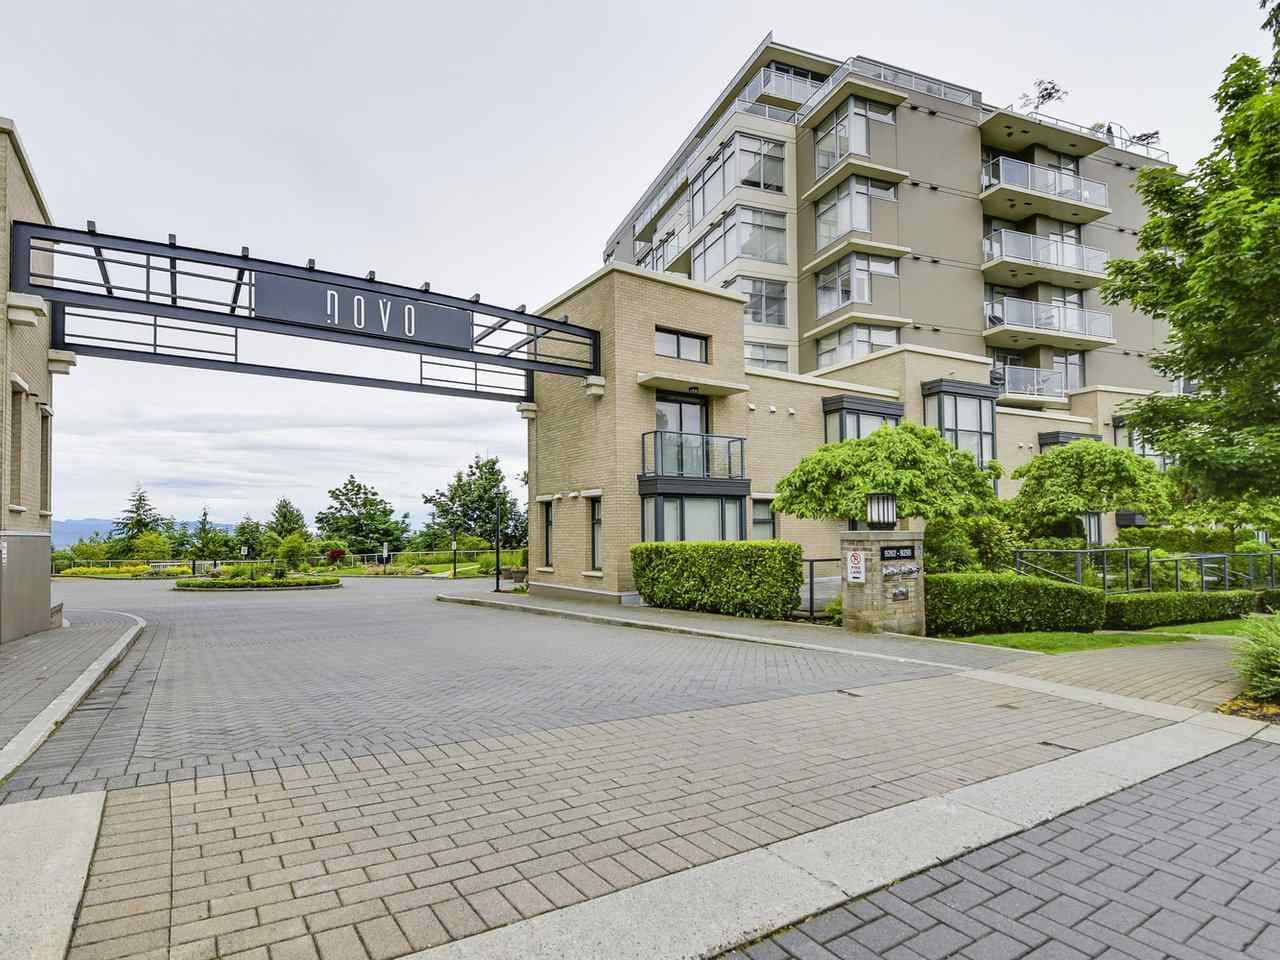 "Main Photo: 701 9298 UNIVERSITY Crescent in Burnaby: Simon Fraser Univer. Condo for sale in ""NOVO ONE"" (Burnaby North)  : MLS(r) # R2179406"